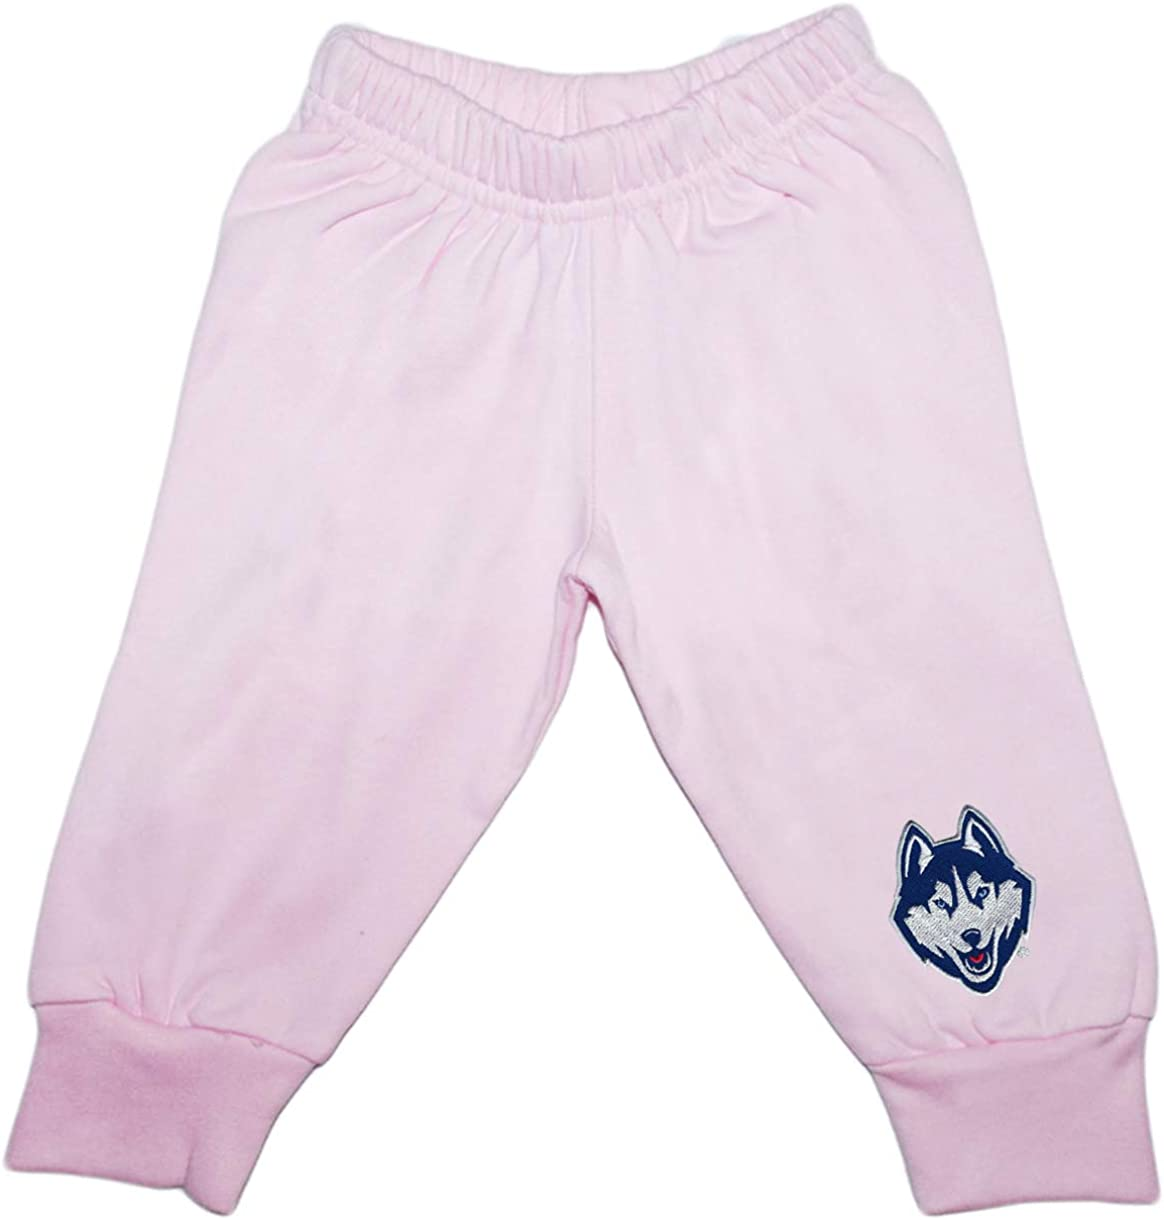 Creative Knitwear Clemson University Baby and Toddler Sweat Pants